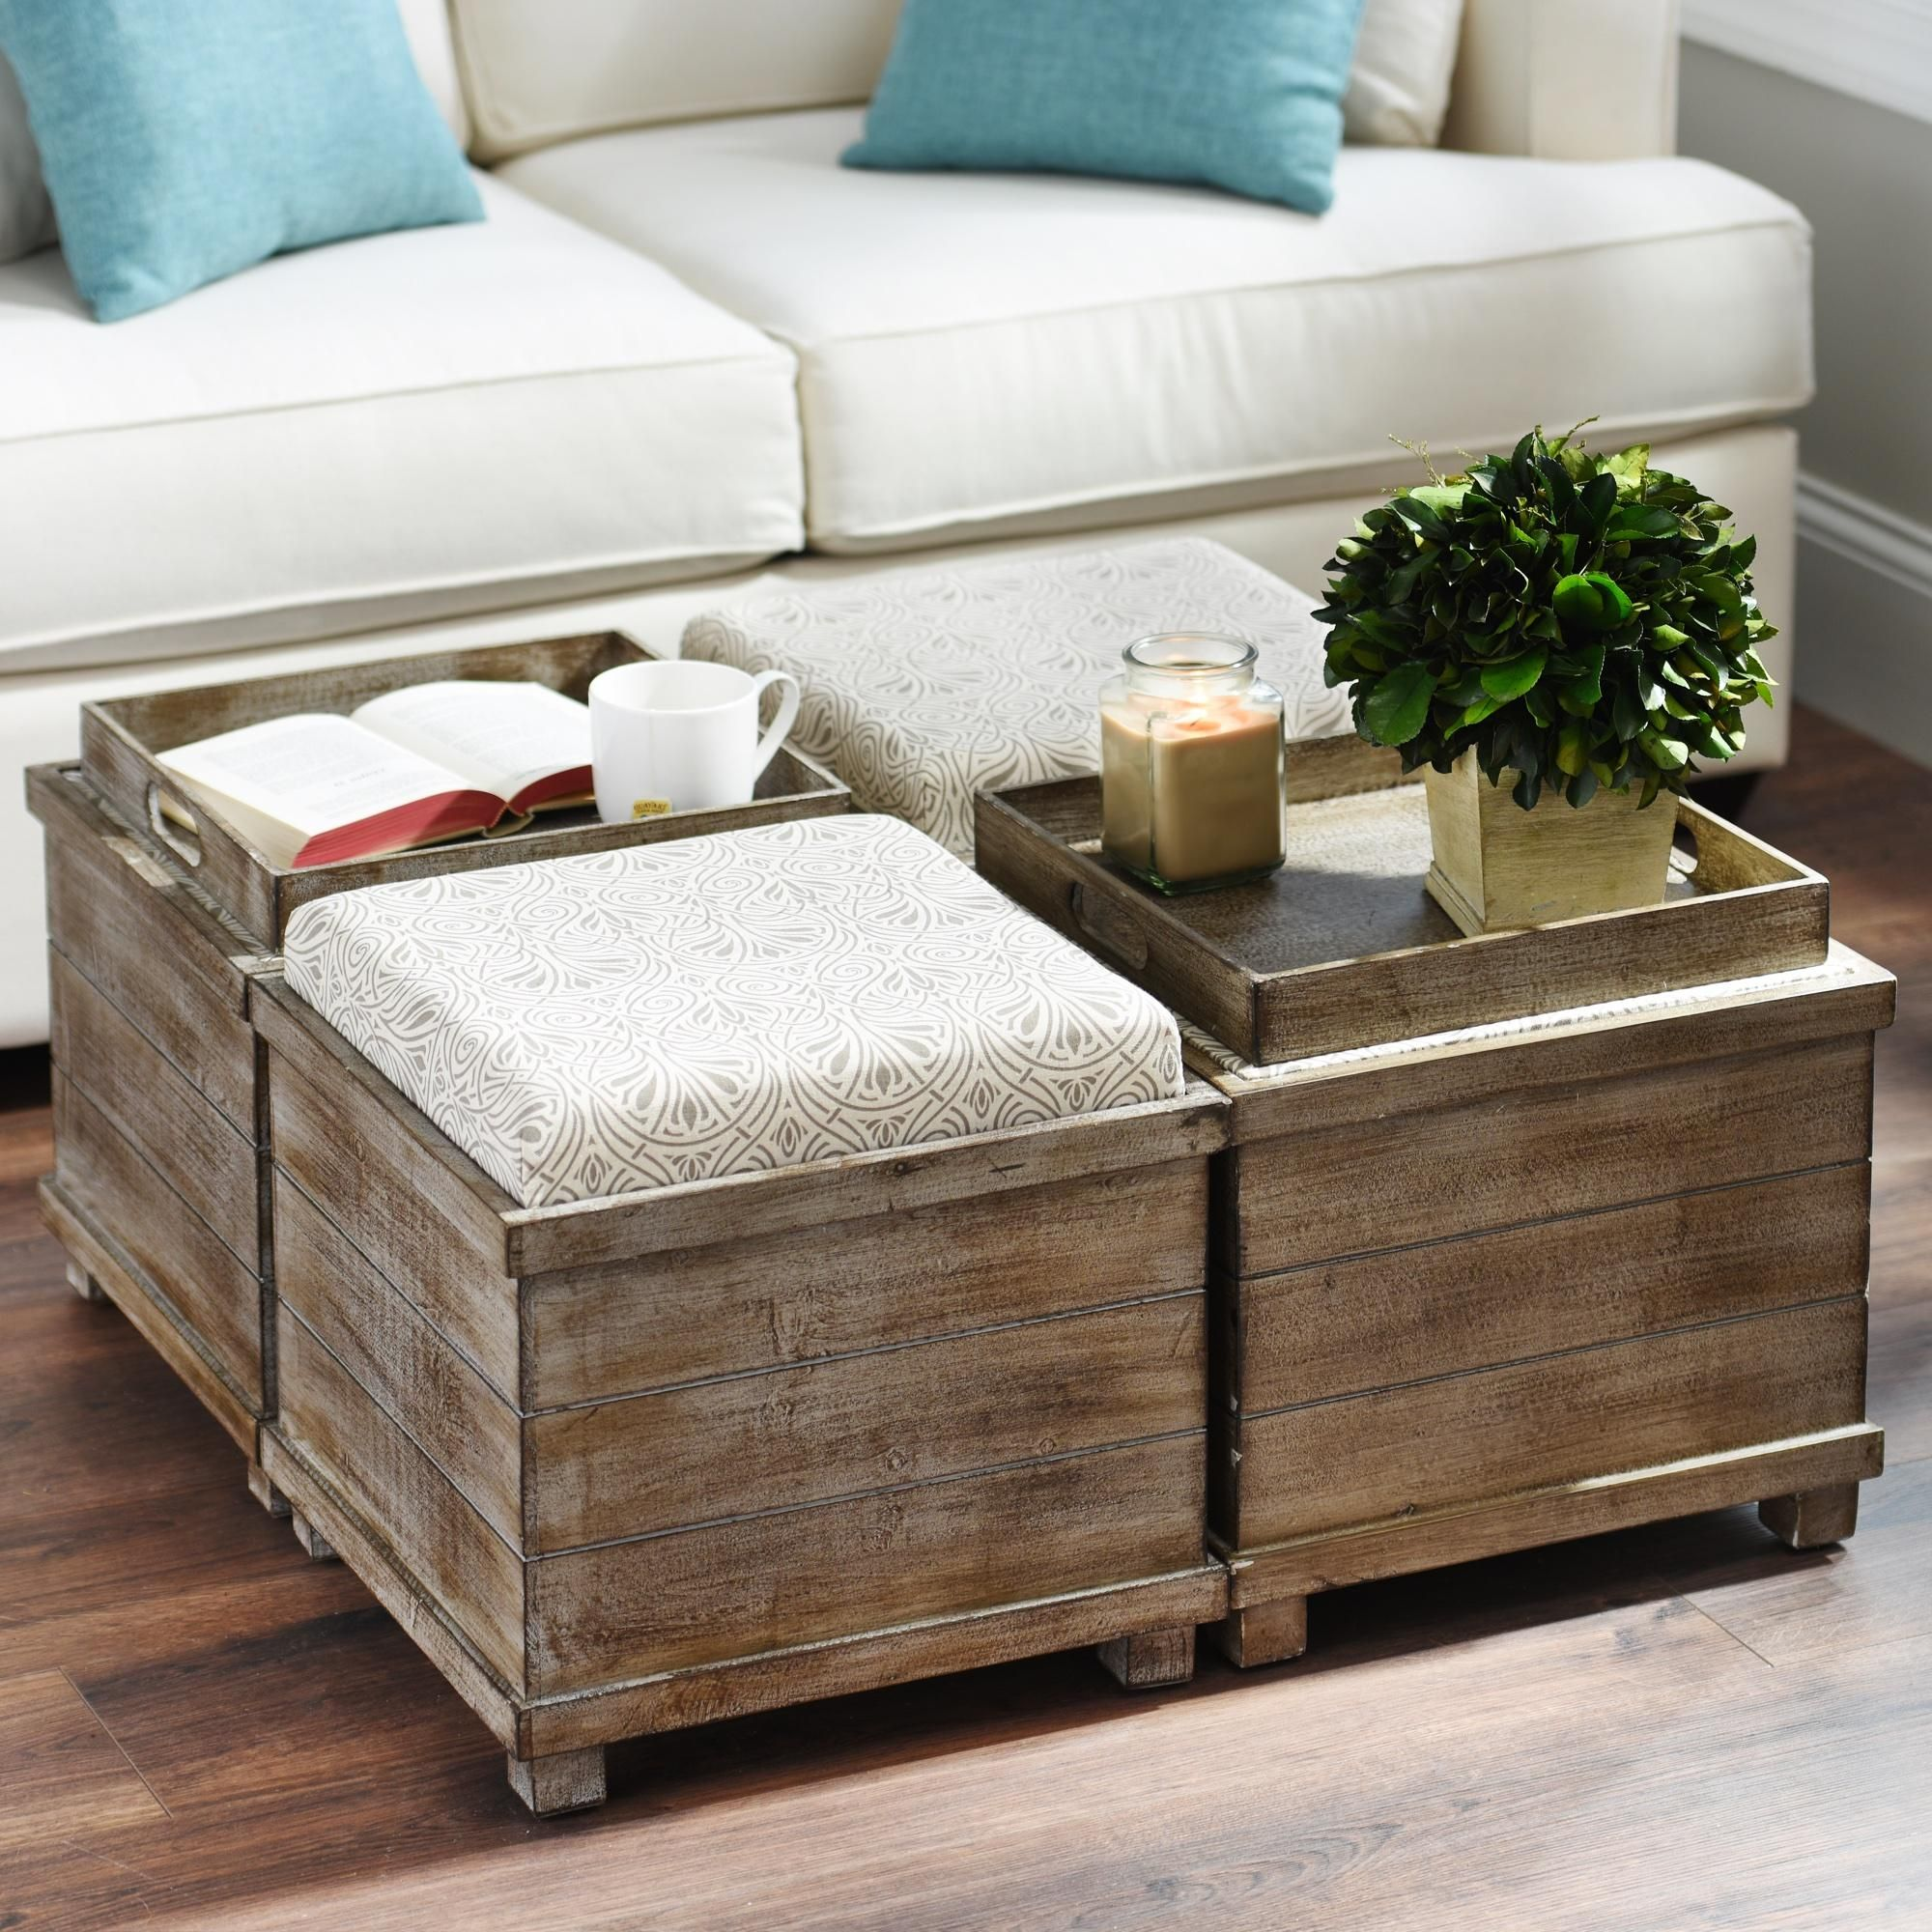 Couchtisch Depot Is It A Table Or Is It An Ottoman Sleek And Innovative Our Taupe